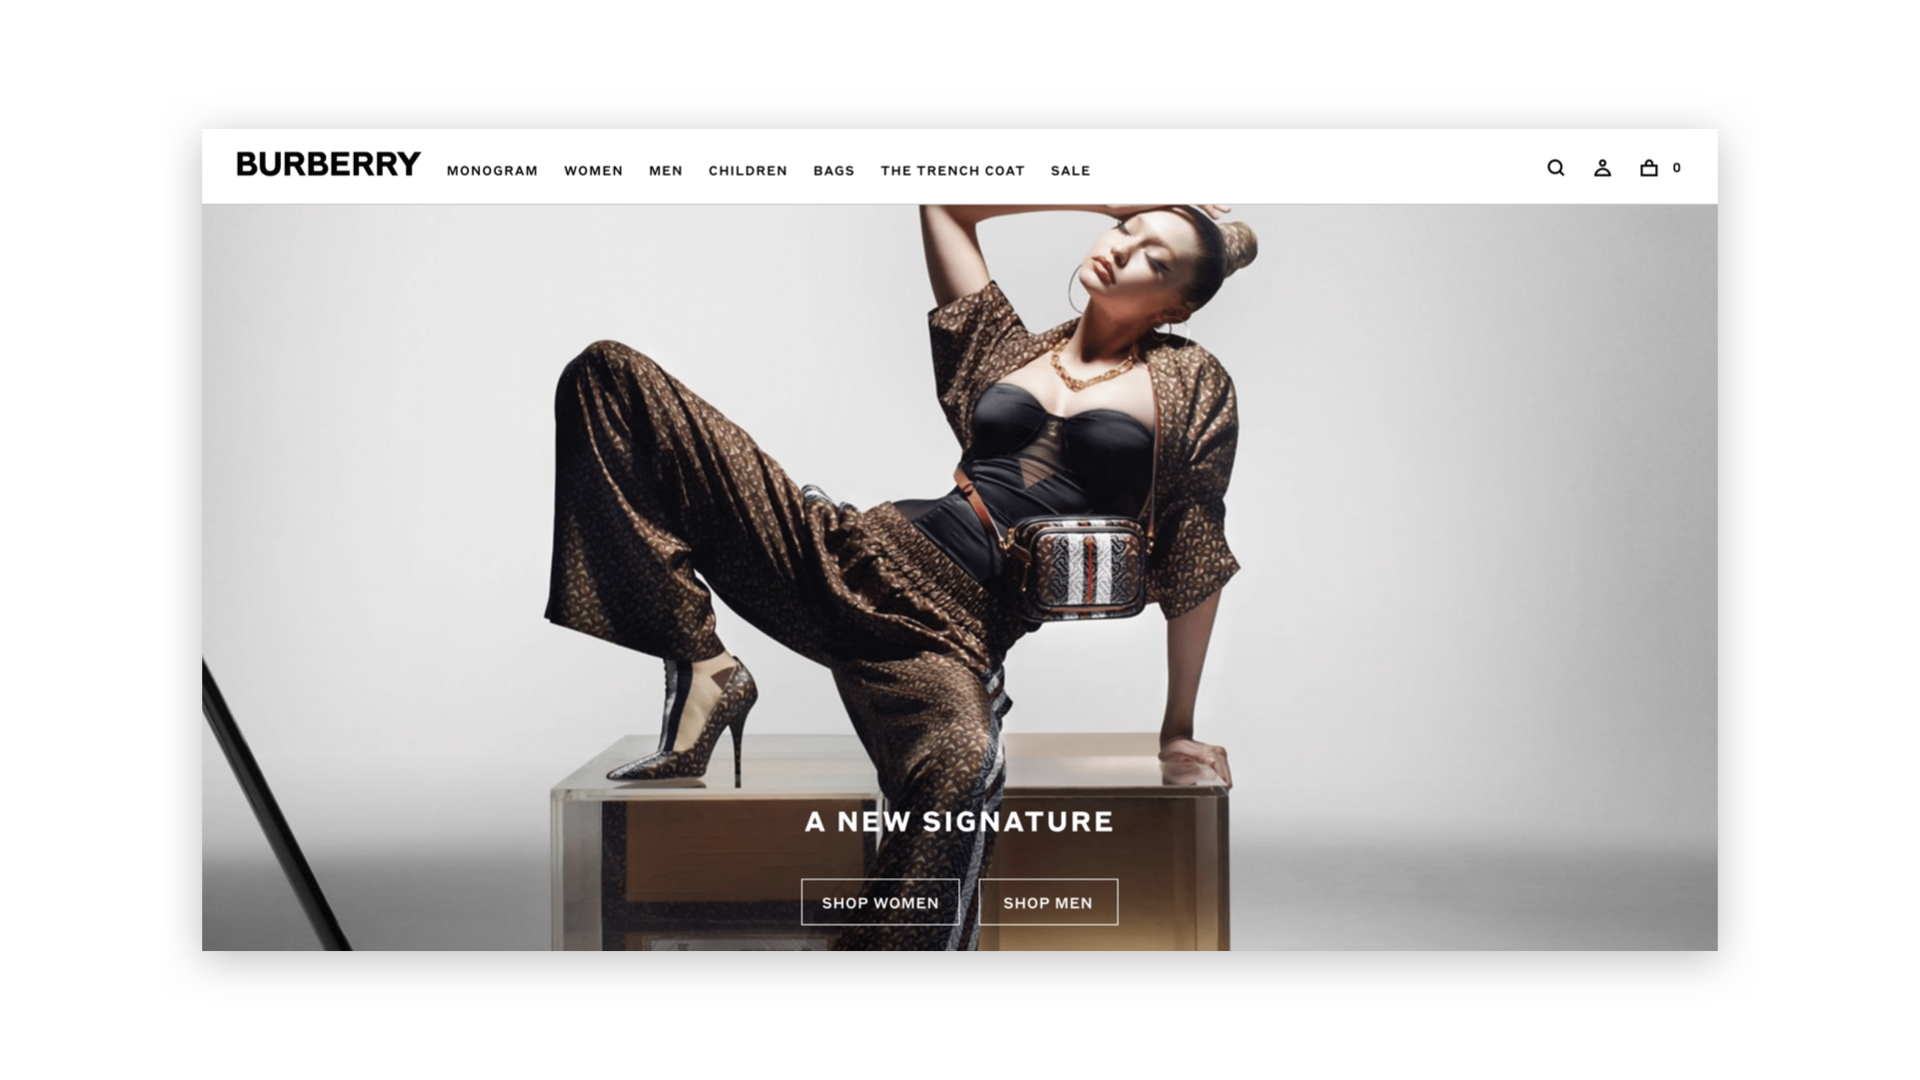 G & Co. is a luxury digital agency: G & Co. has worked with Burberry for their eCommerce site